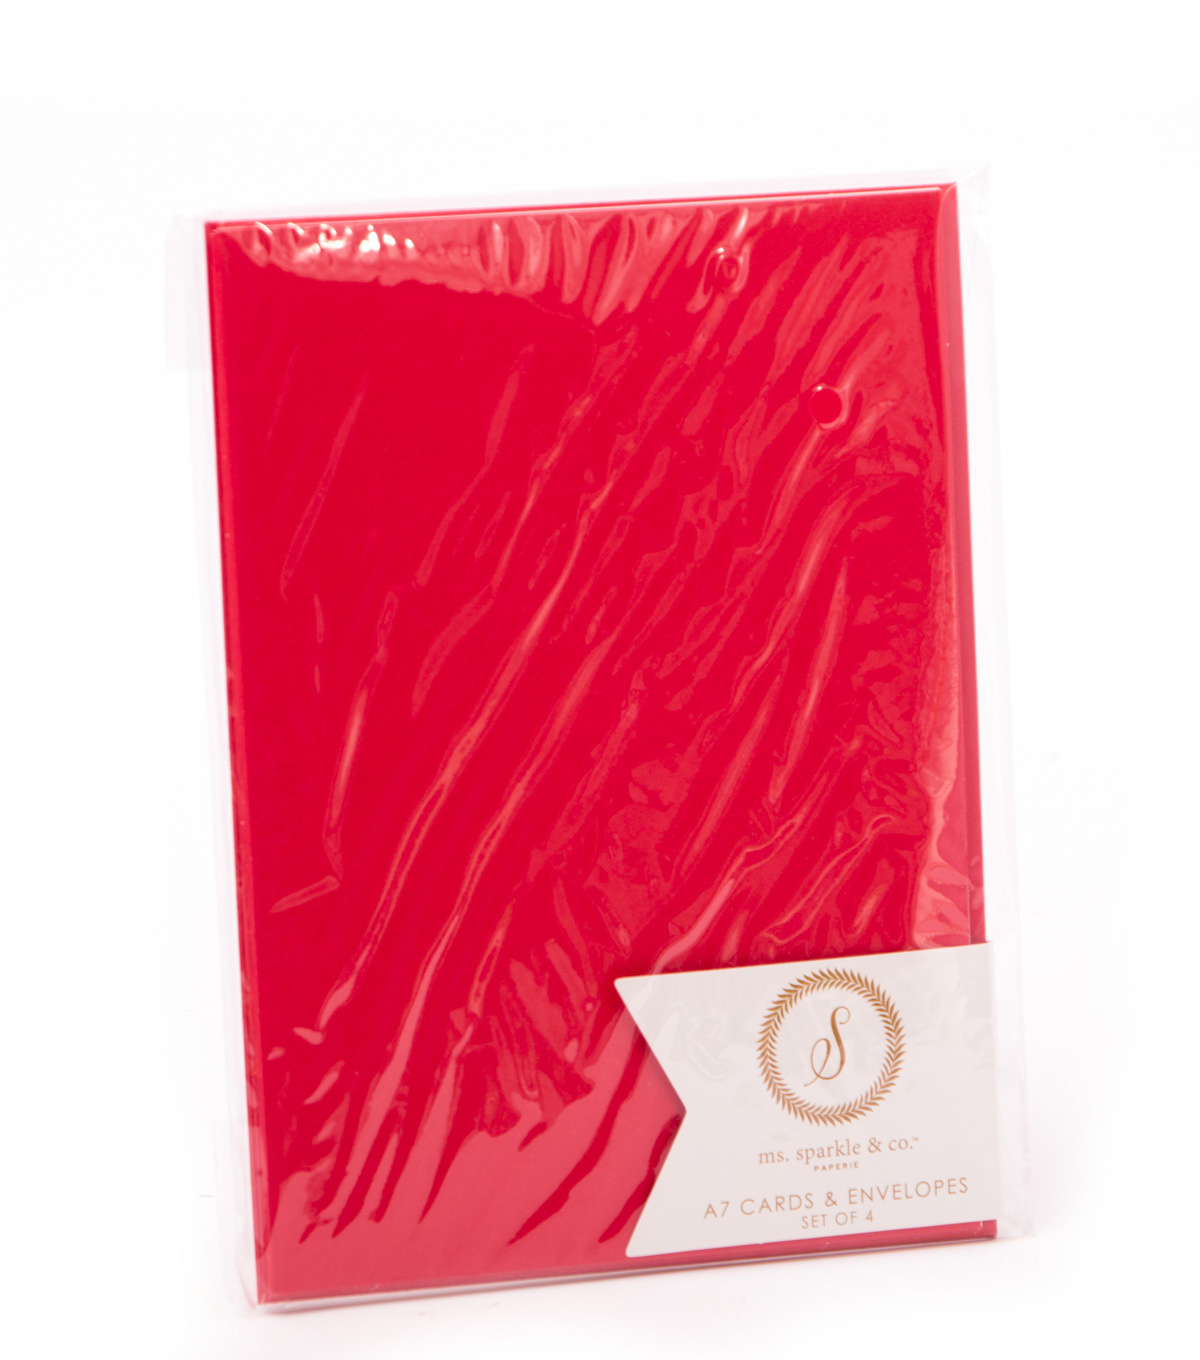 Ms. Sparkle & Co A2 Cards & Envelopes-Red